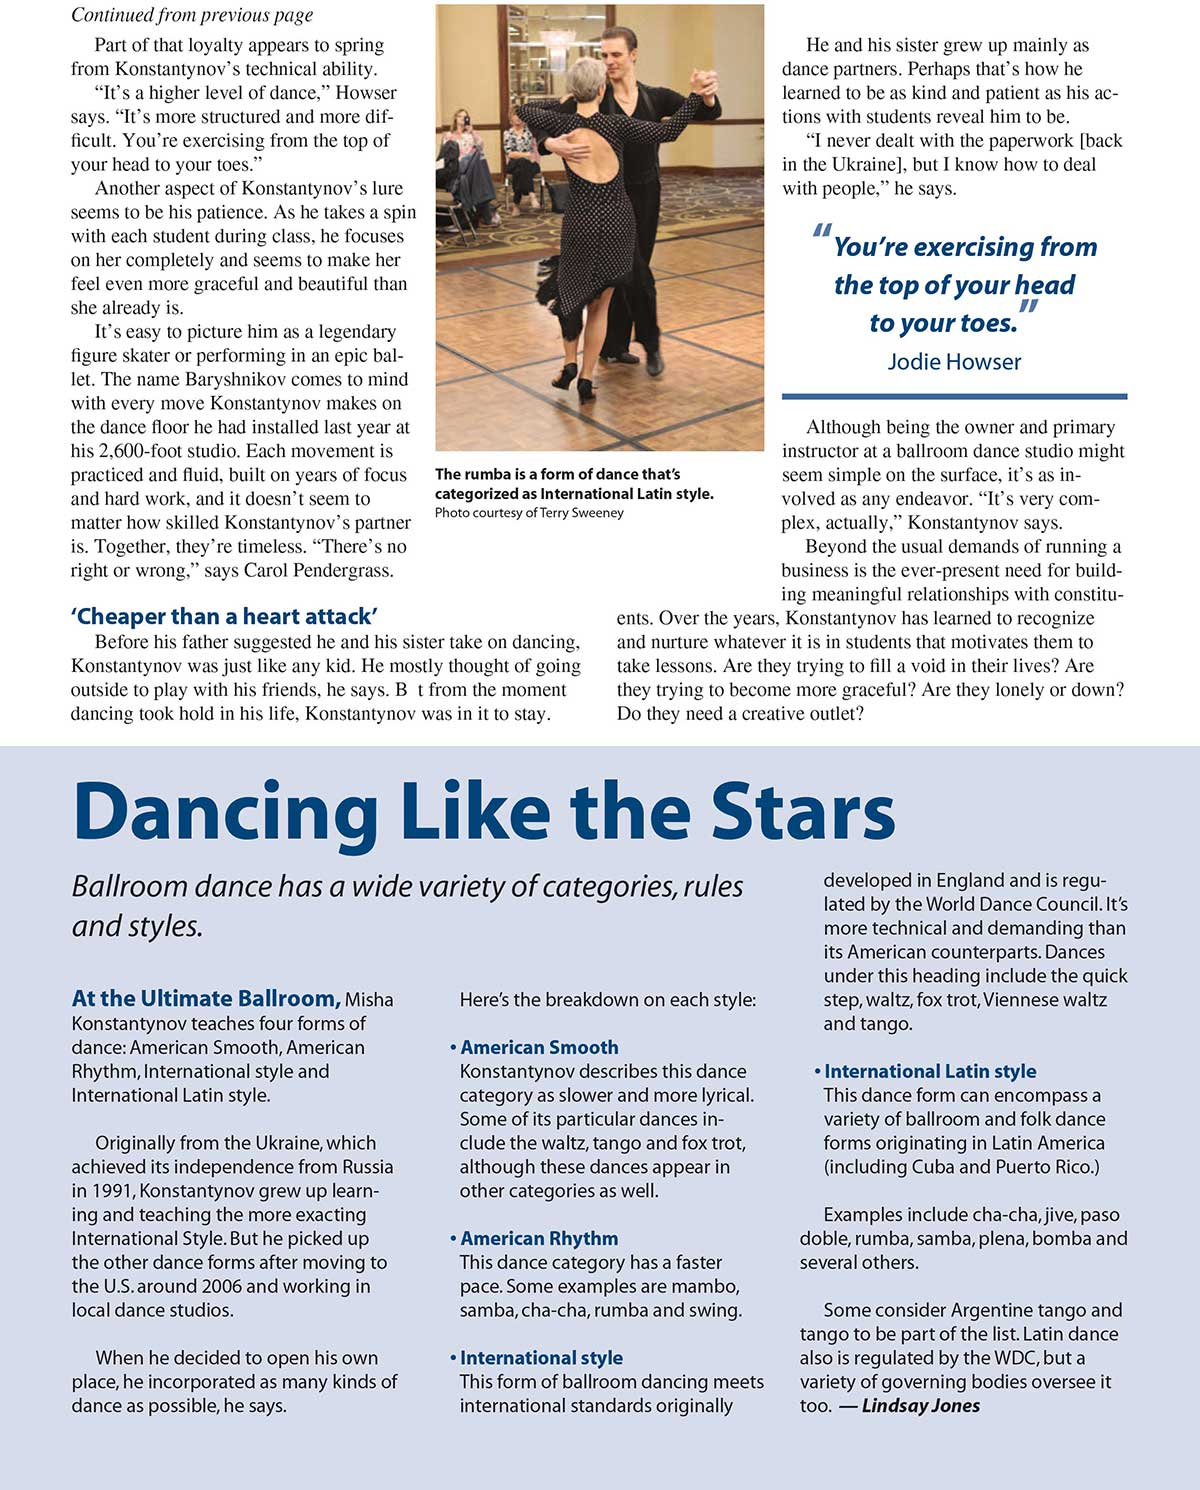 Cordova Life Magazine - June 2013 - Ultimate Ballroom